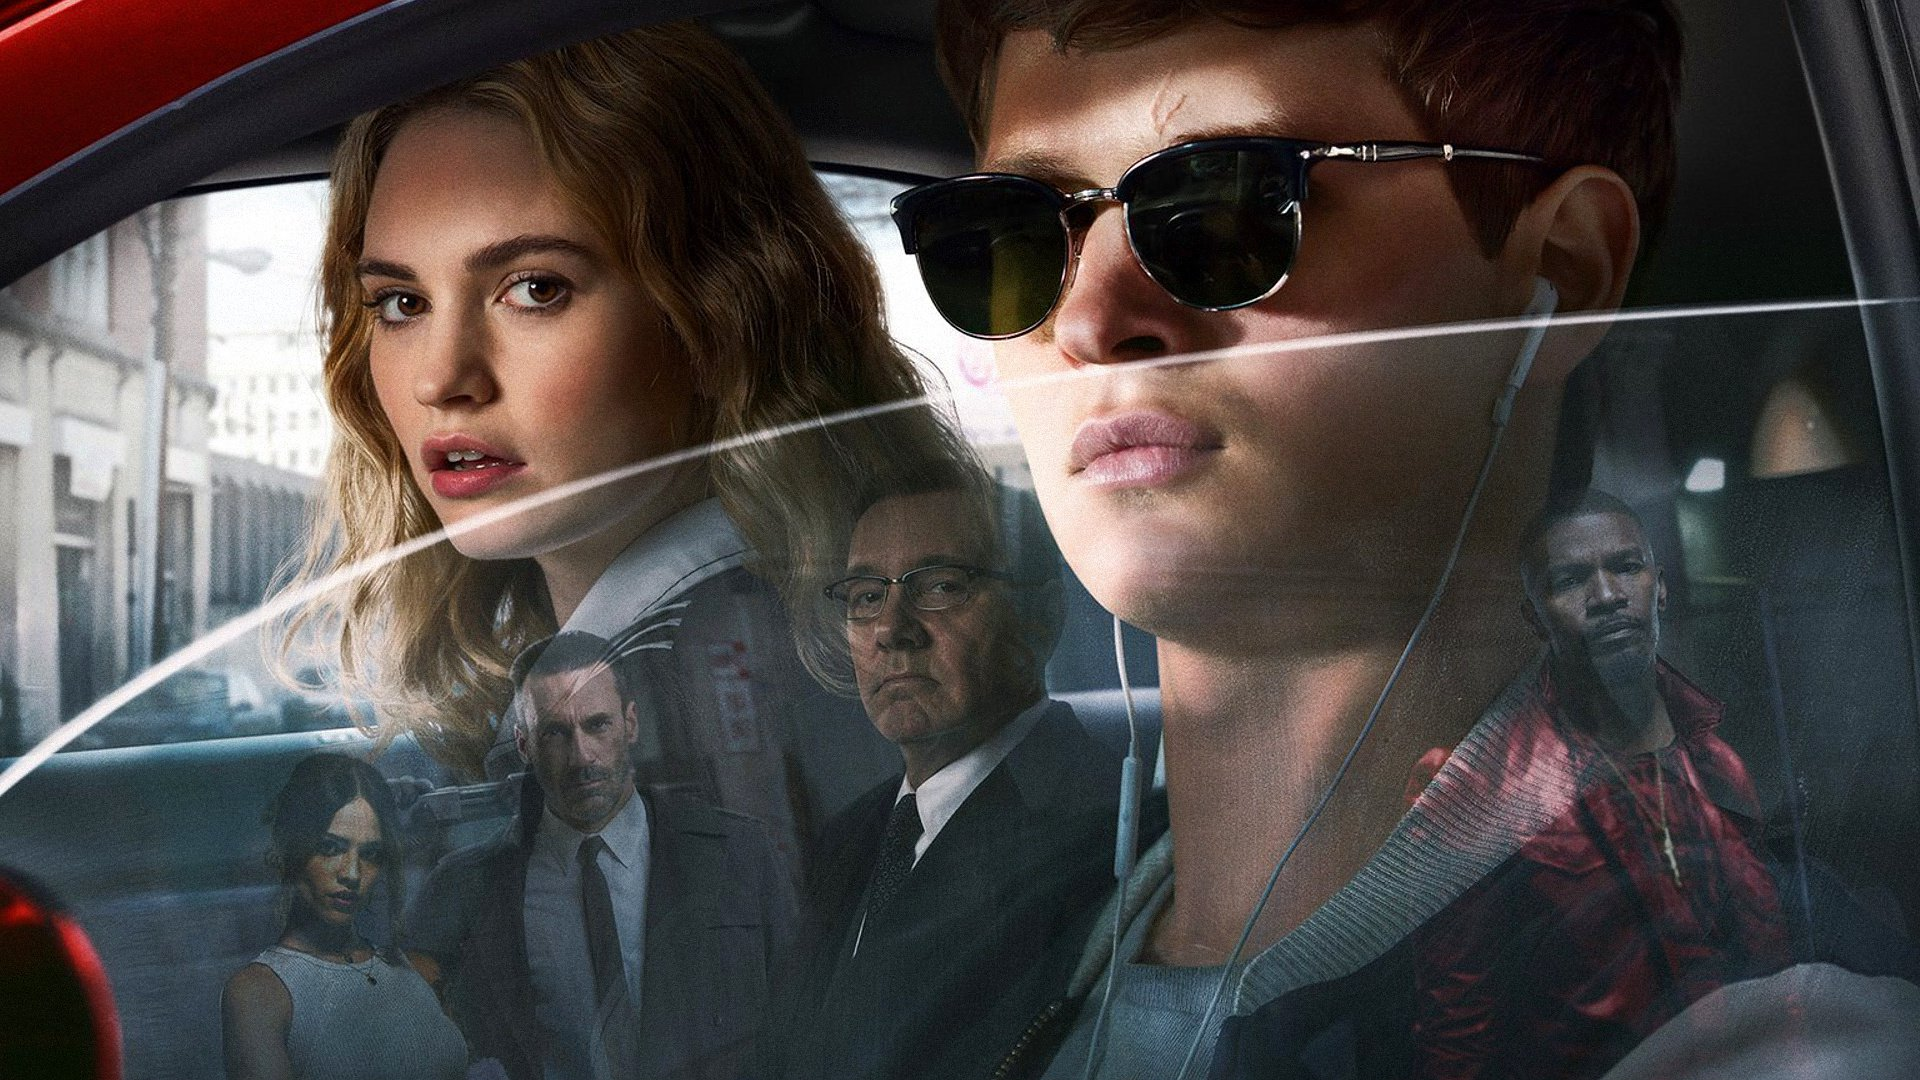 I hit the road and I'm gone: Baby Driver